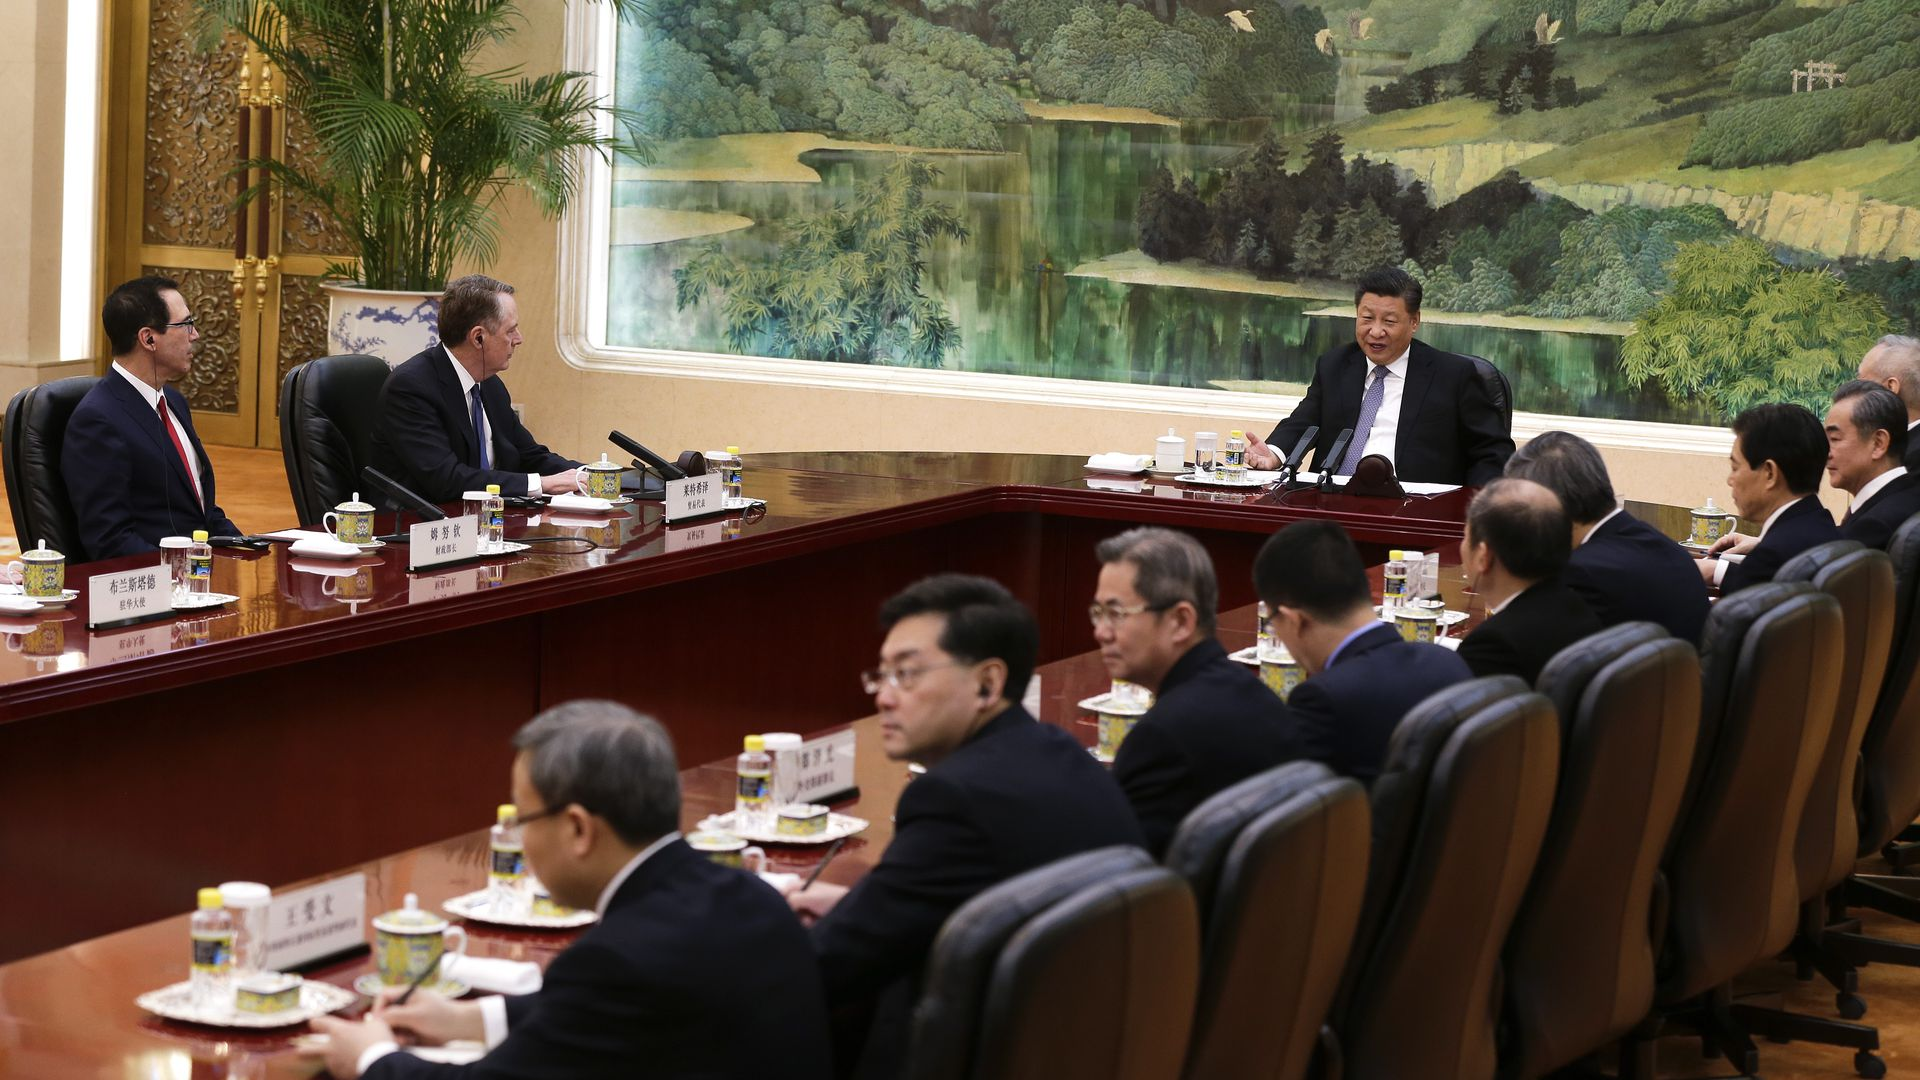 In this image, Chinese President Xi Jinping speaks at a trade summit along with U.S. representatives.